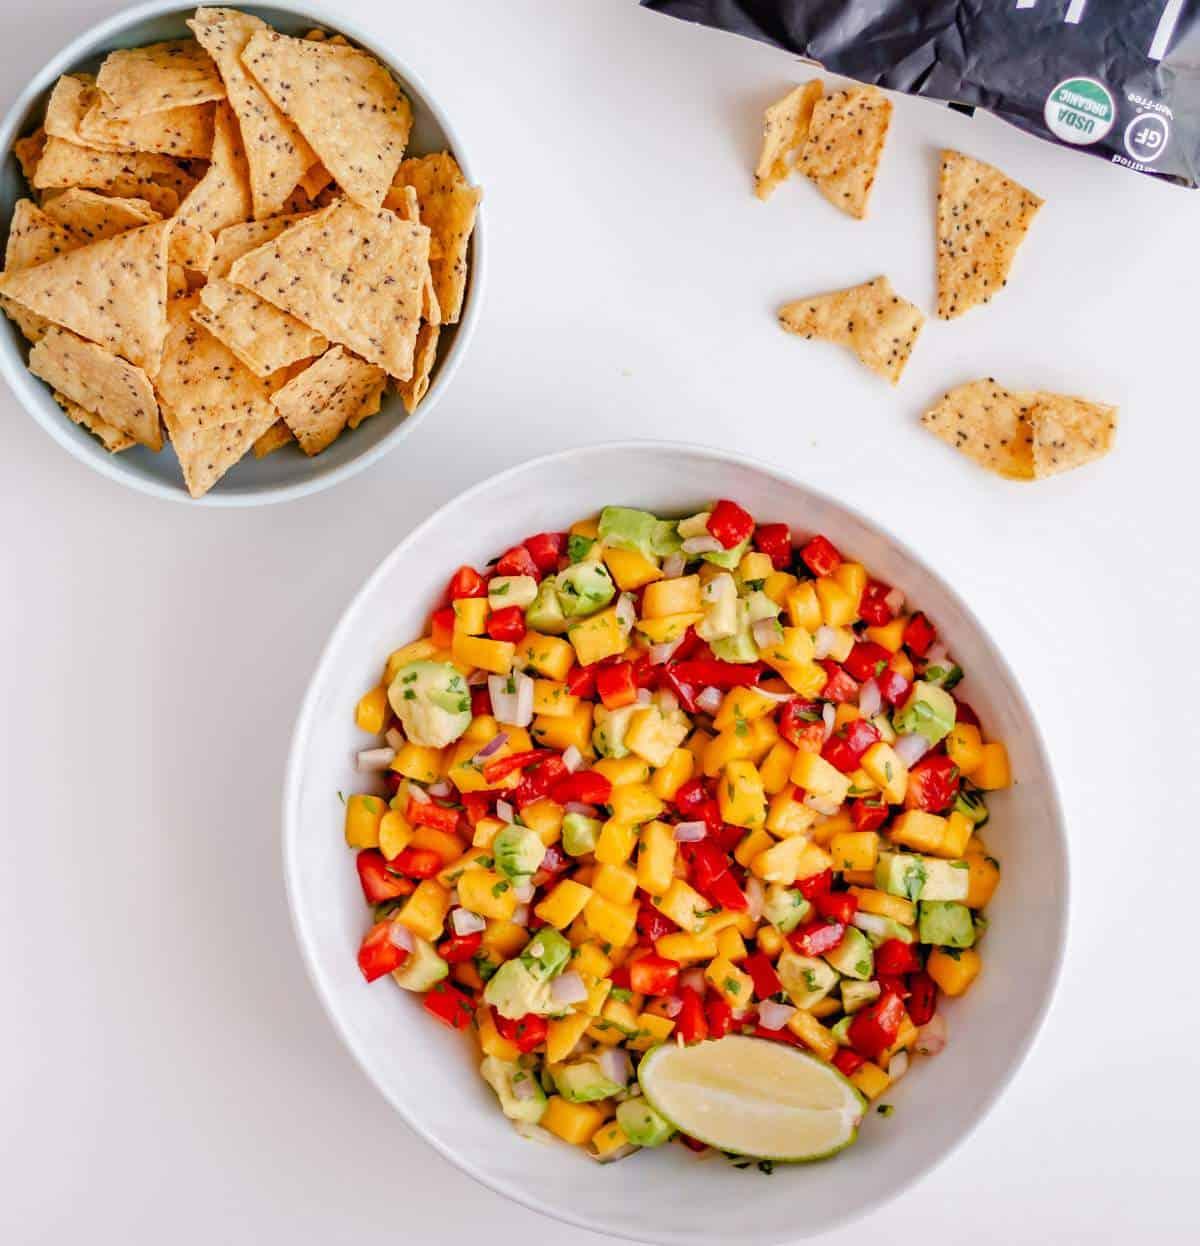 A bowl of mango salsa next to a bowl of chips.